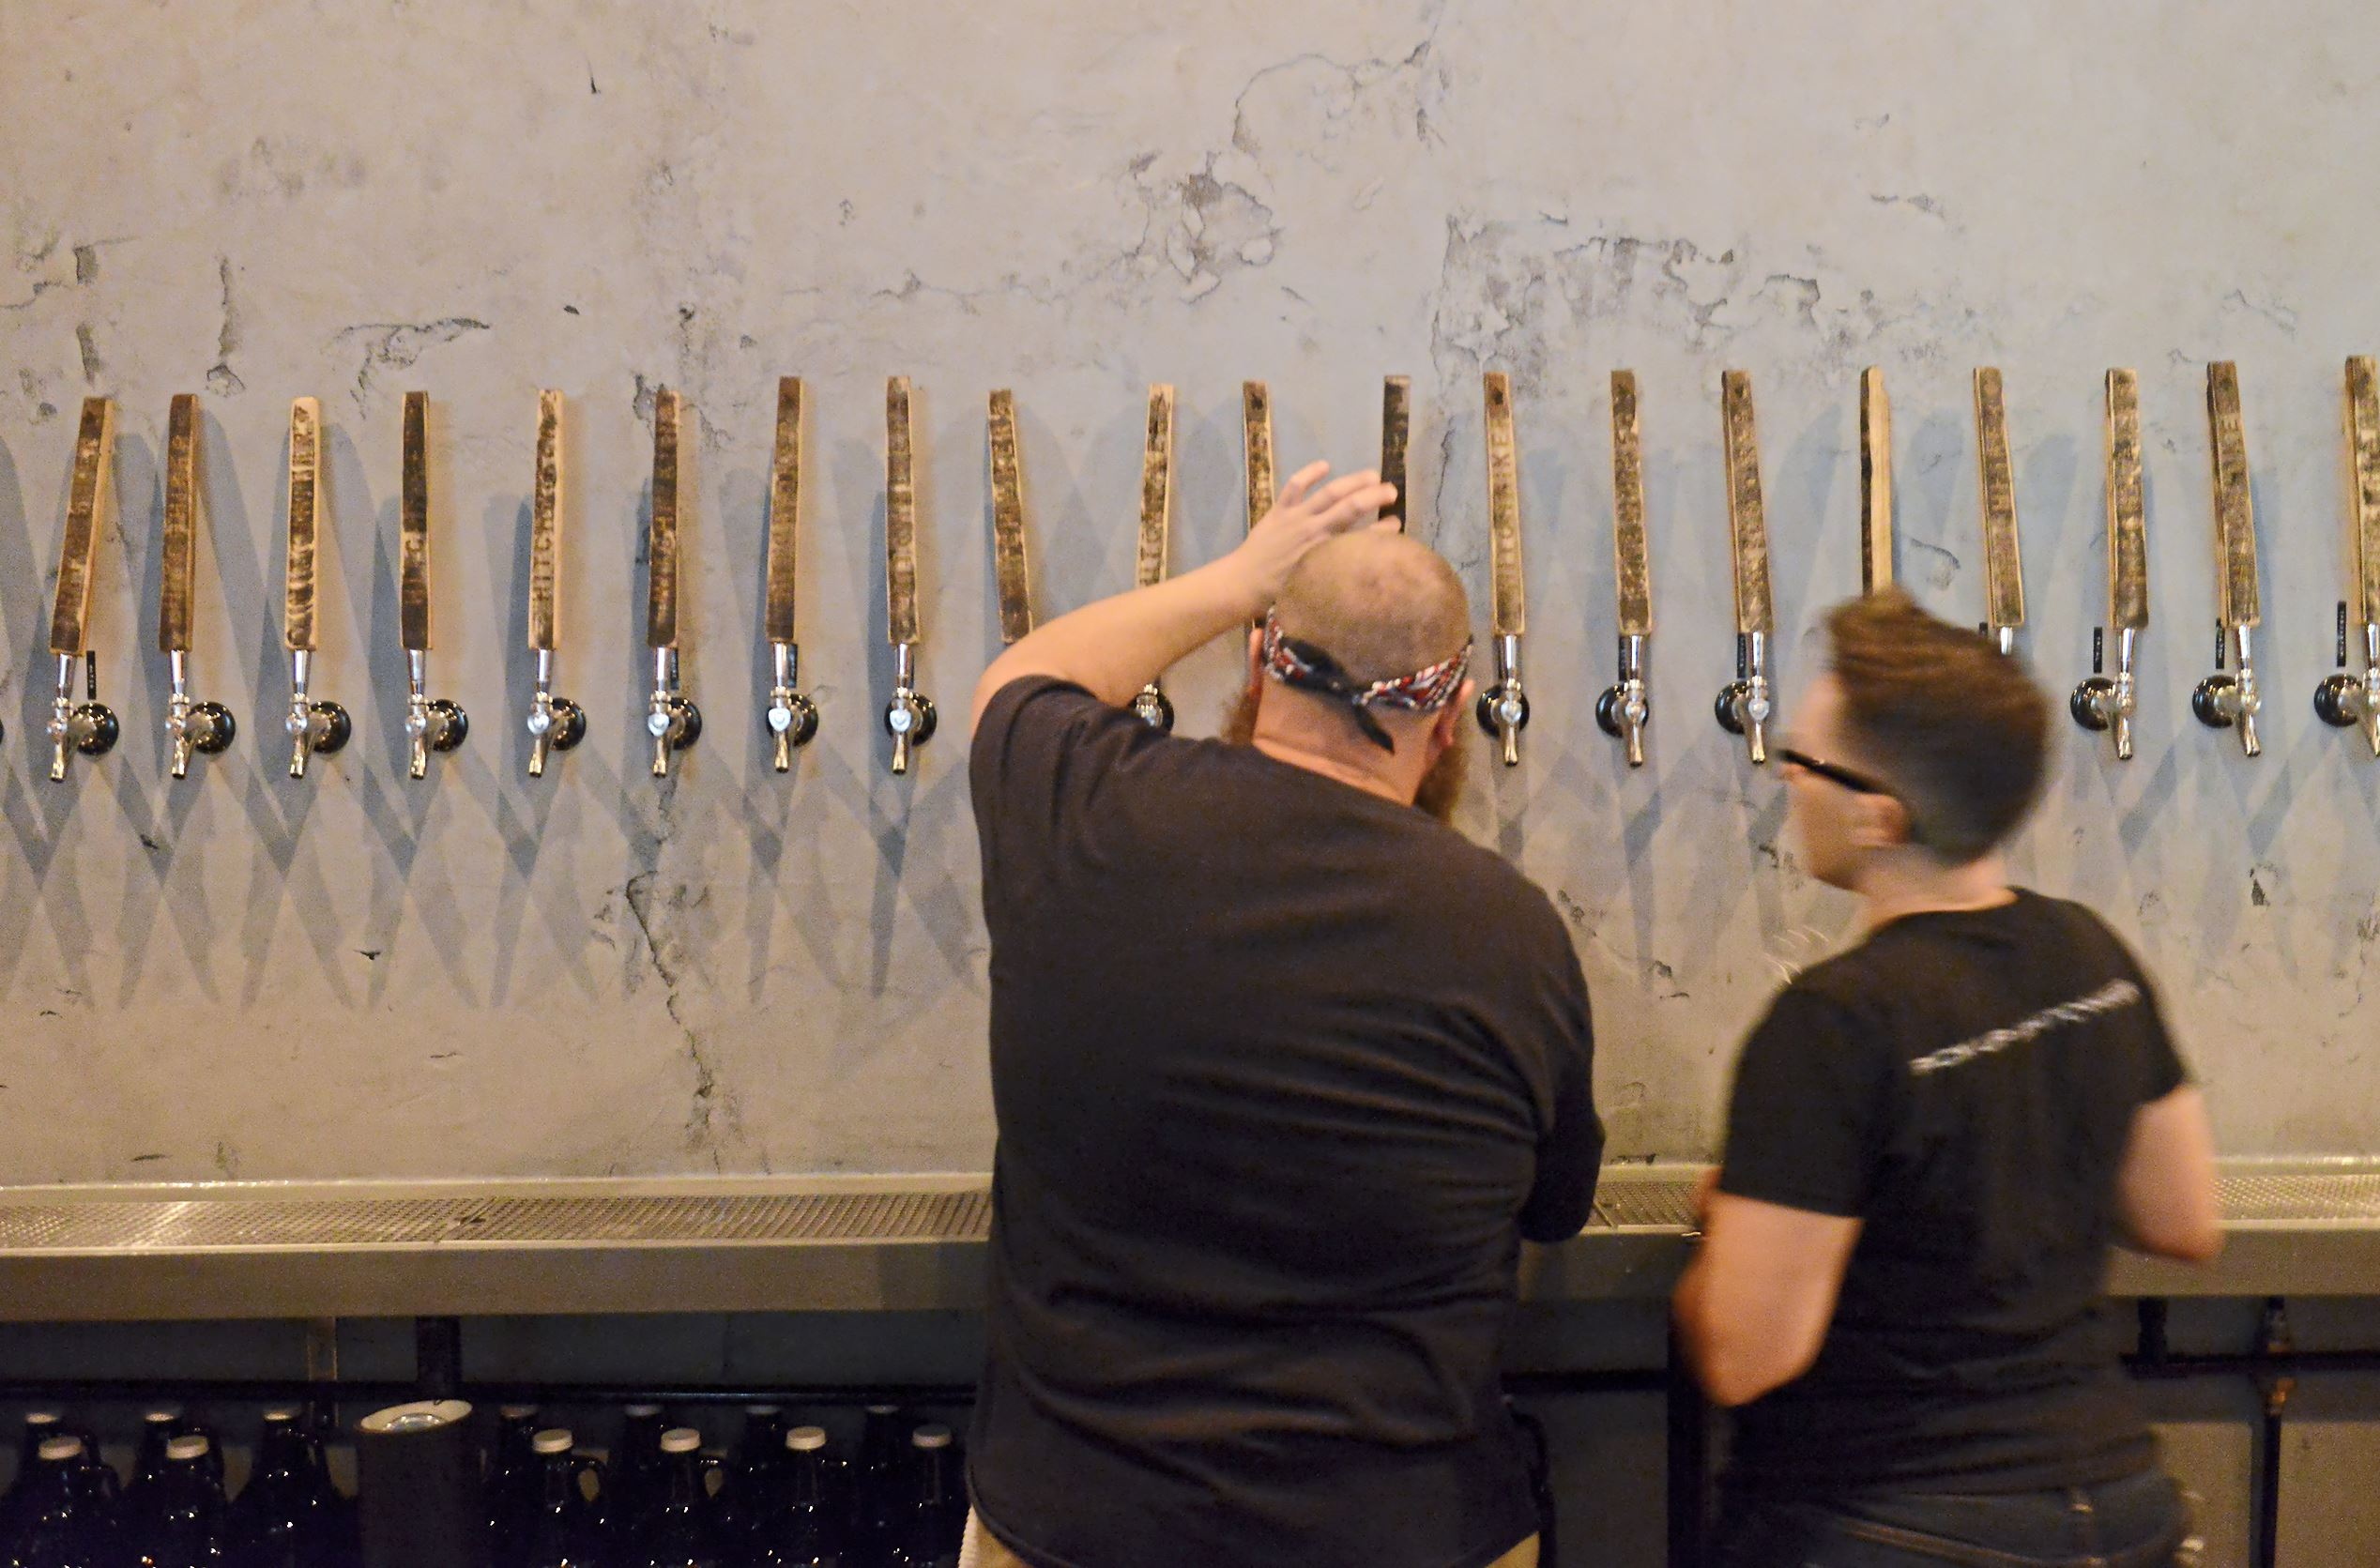 20170906rldHitchhiker03-1 Bartenders pour beer during Hitchhiker Brewing Co.'s launch party celebrating the opening of its second location Wednesday in Sharpsburg.